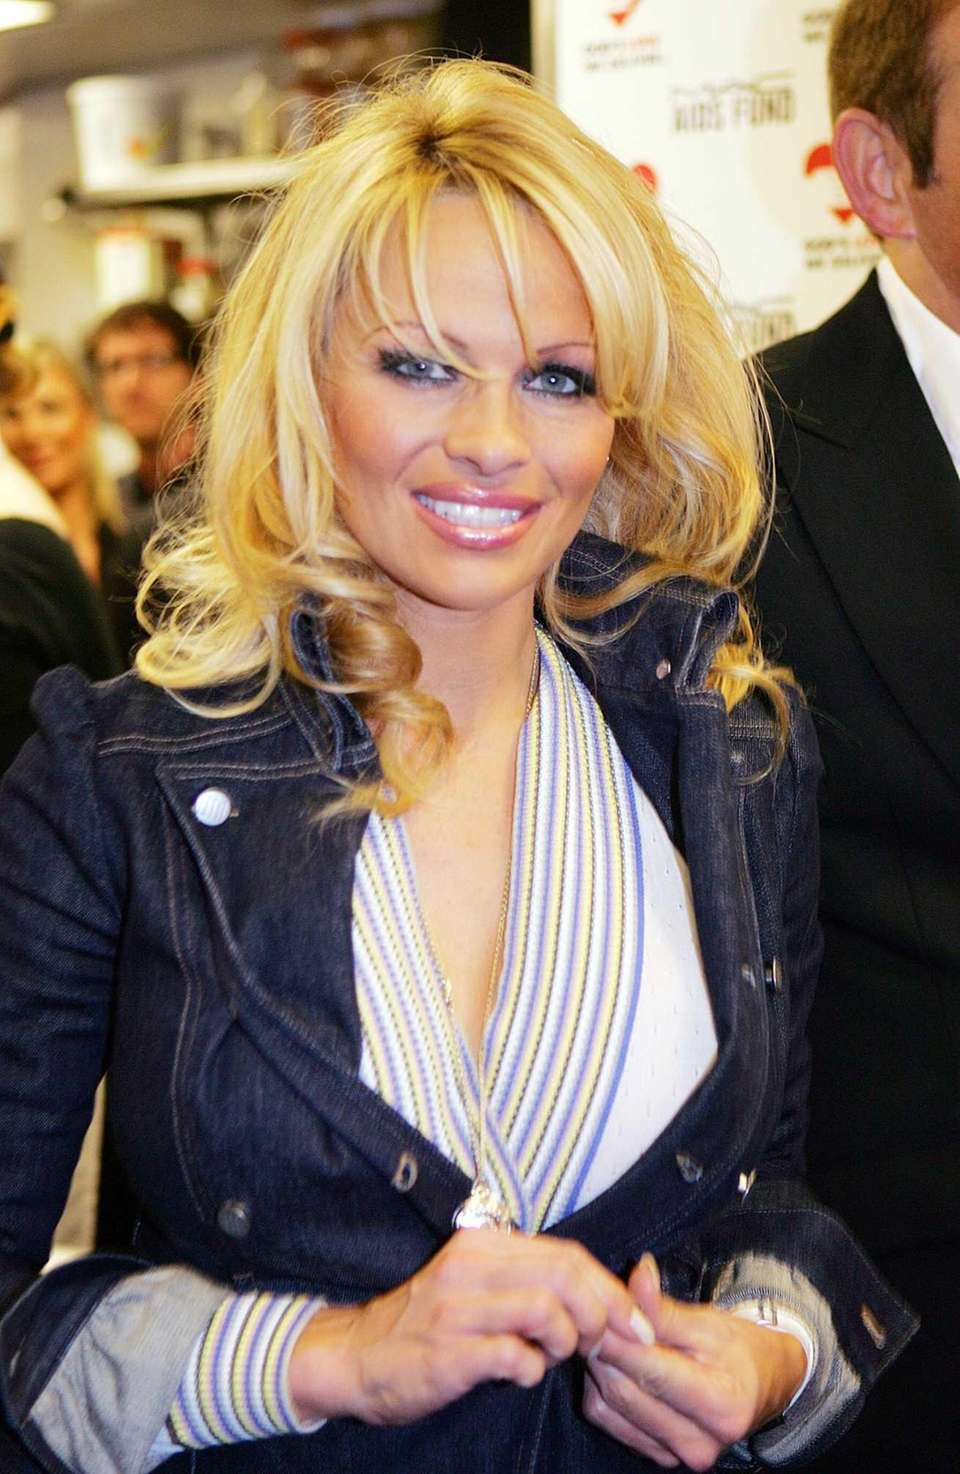 Pamela Anderson was born in Ladysmith, Canada. With